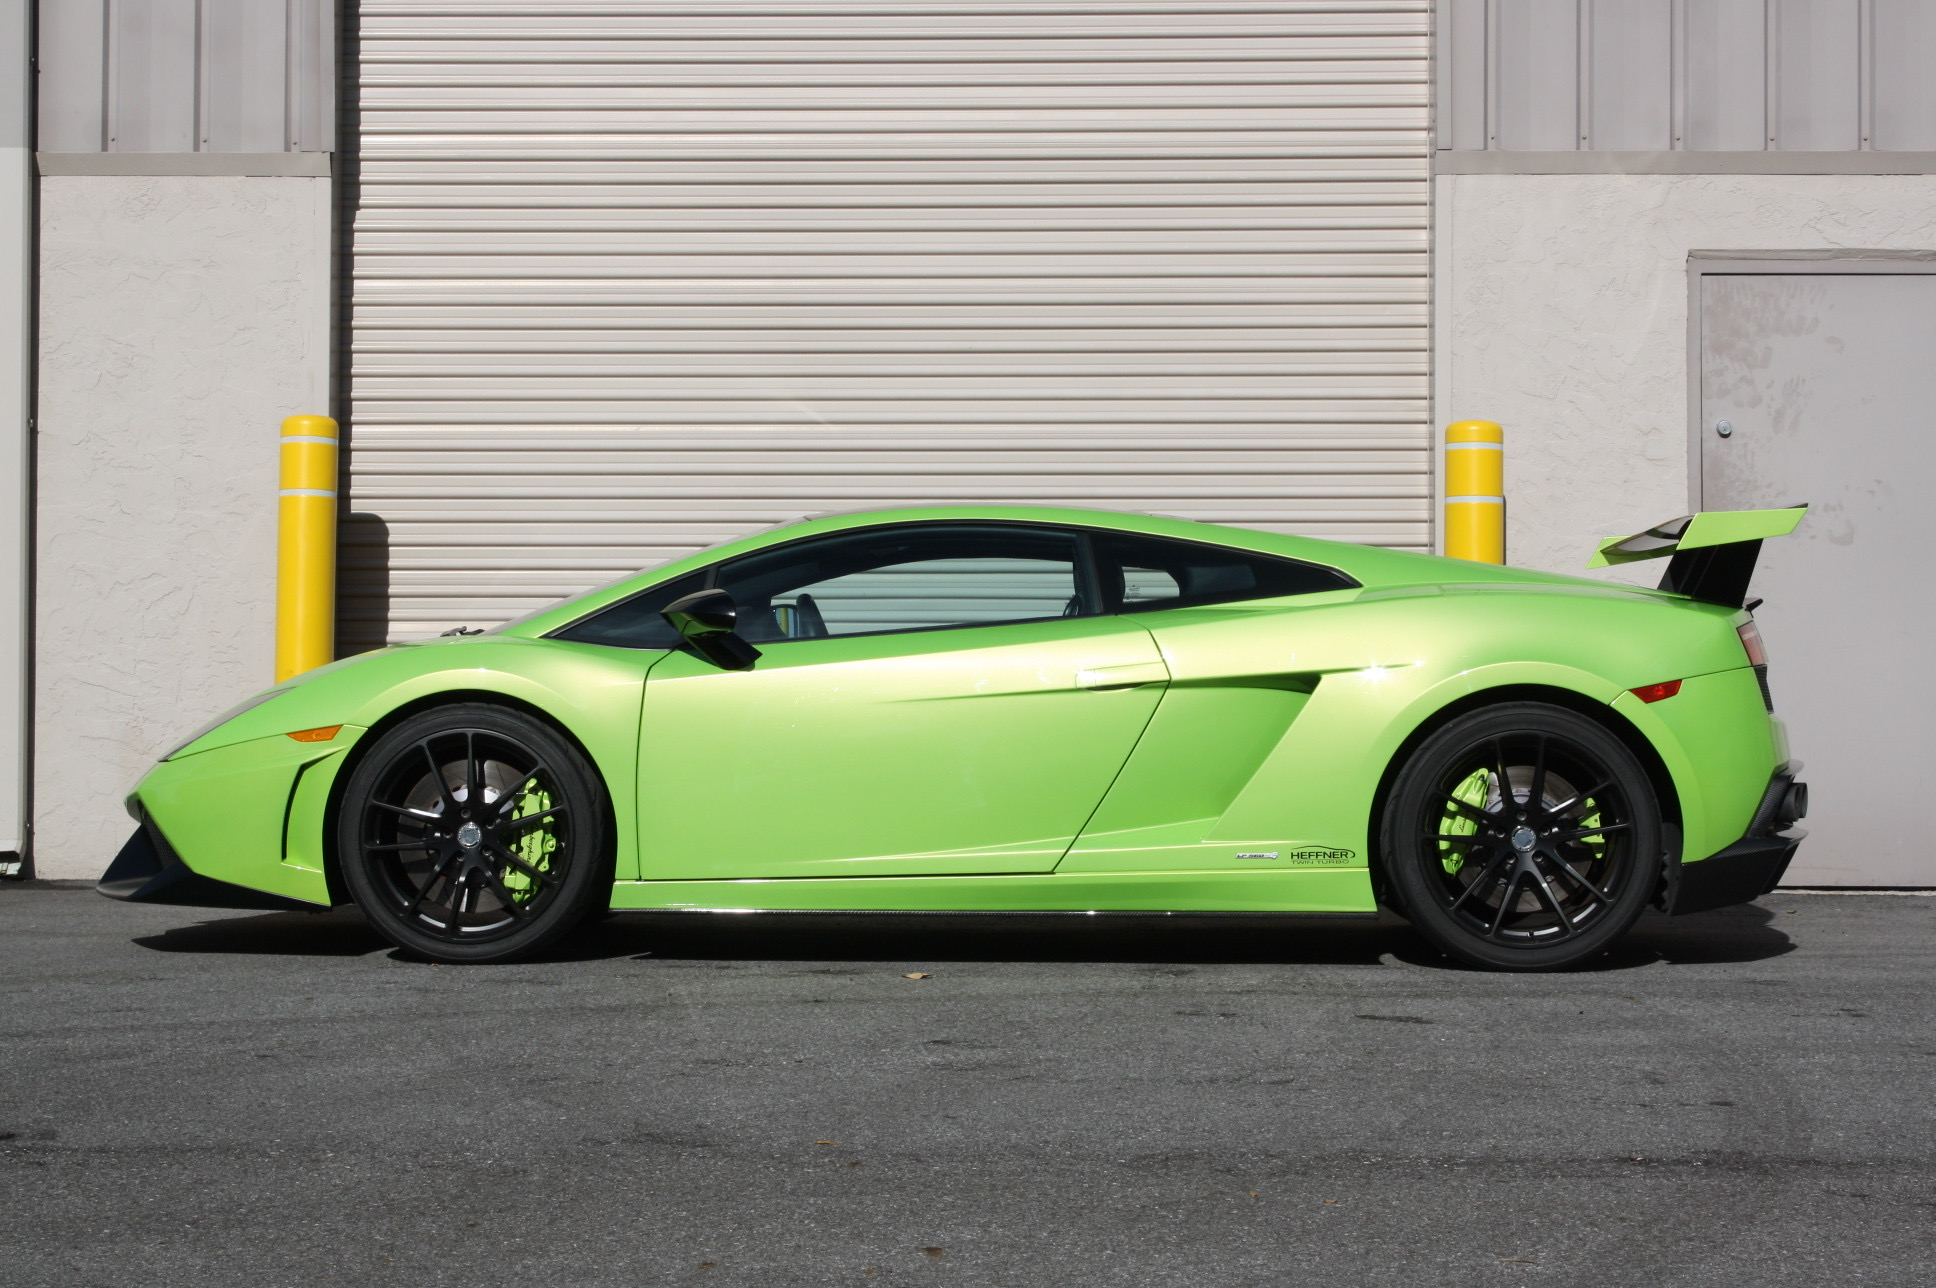 Twin Turbo Lamborghini Lp560 For Sale Heffner Performance